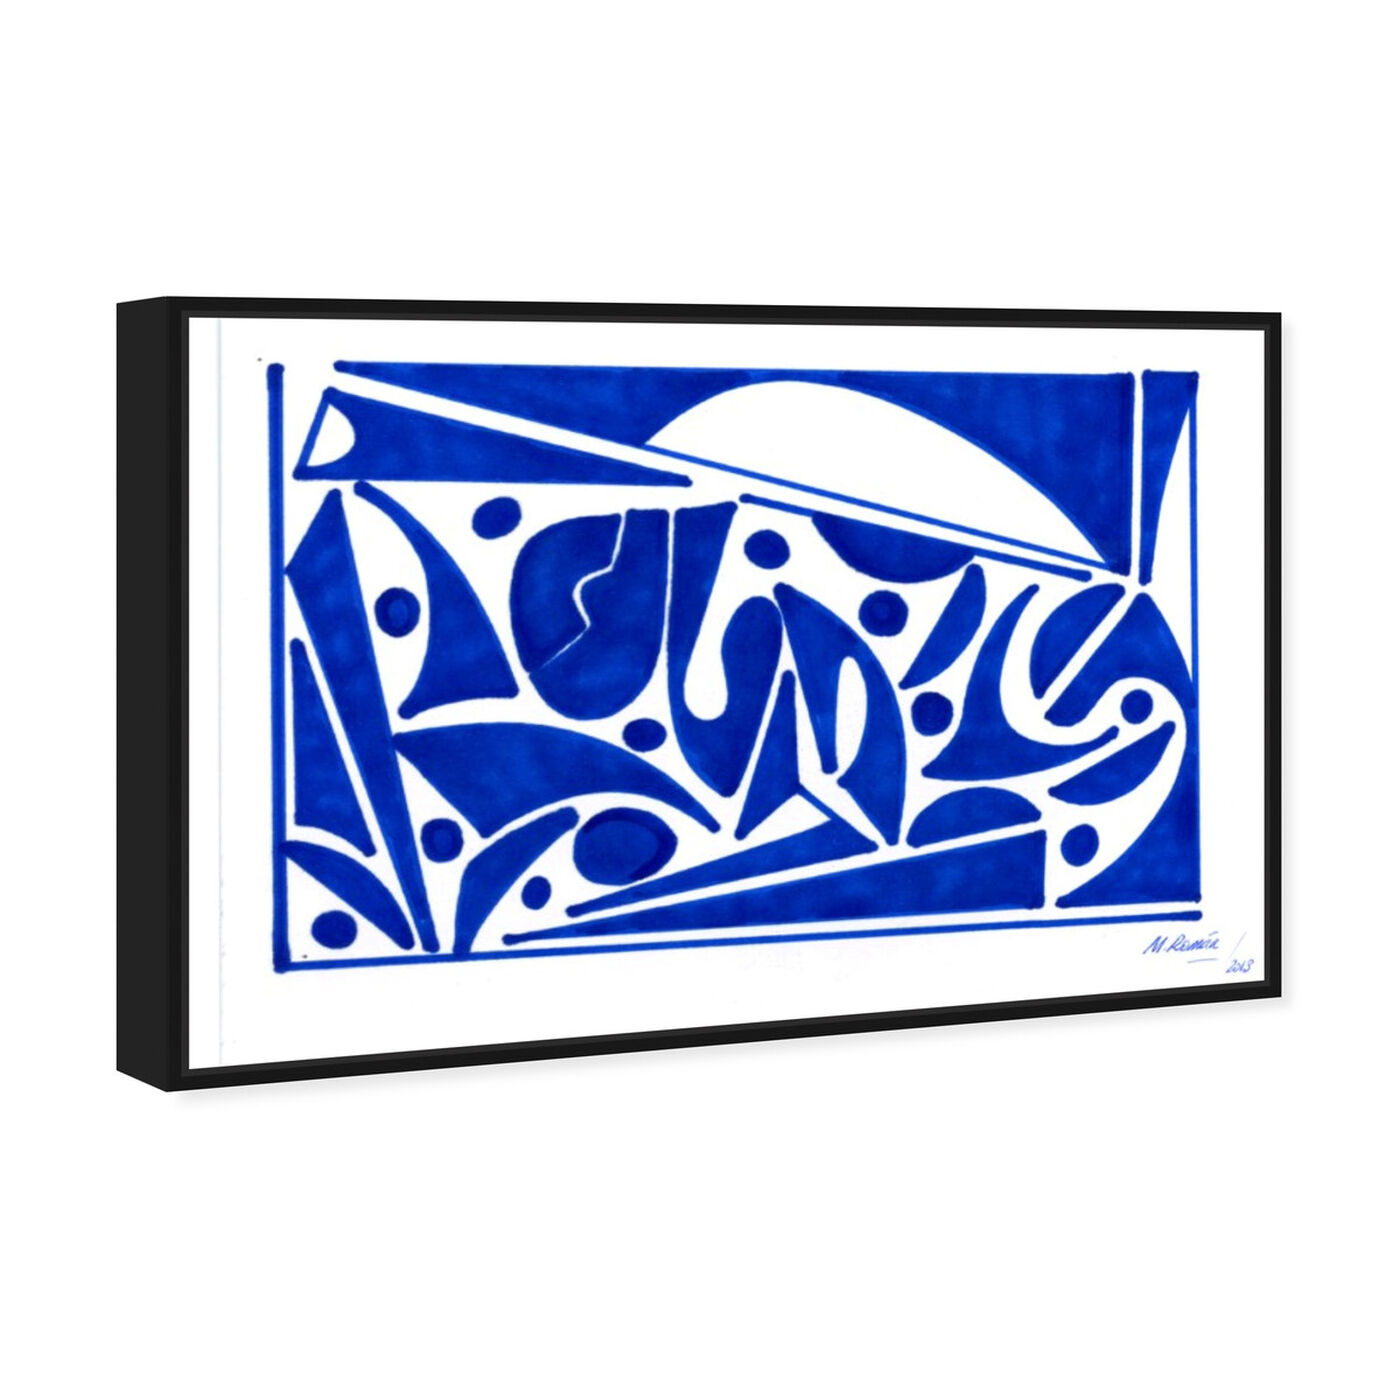 Angled view of Mediterranean Views featuring abstract and shapes art.